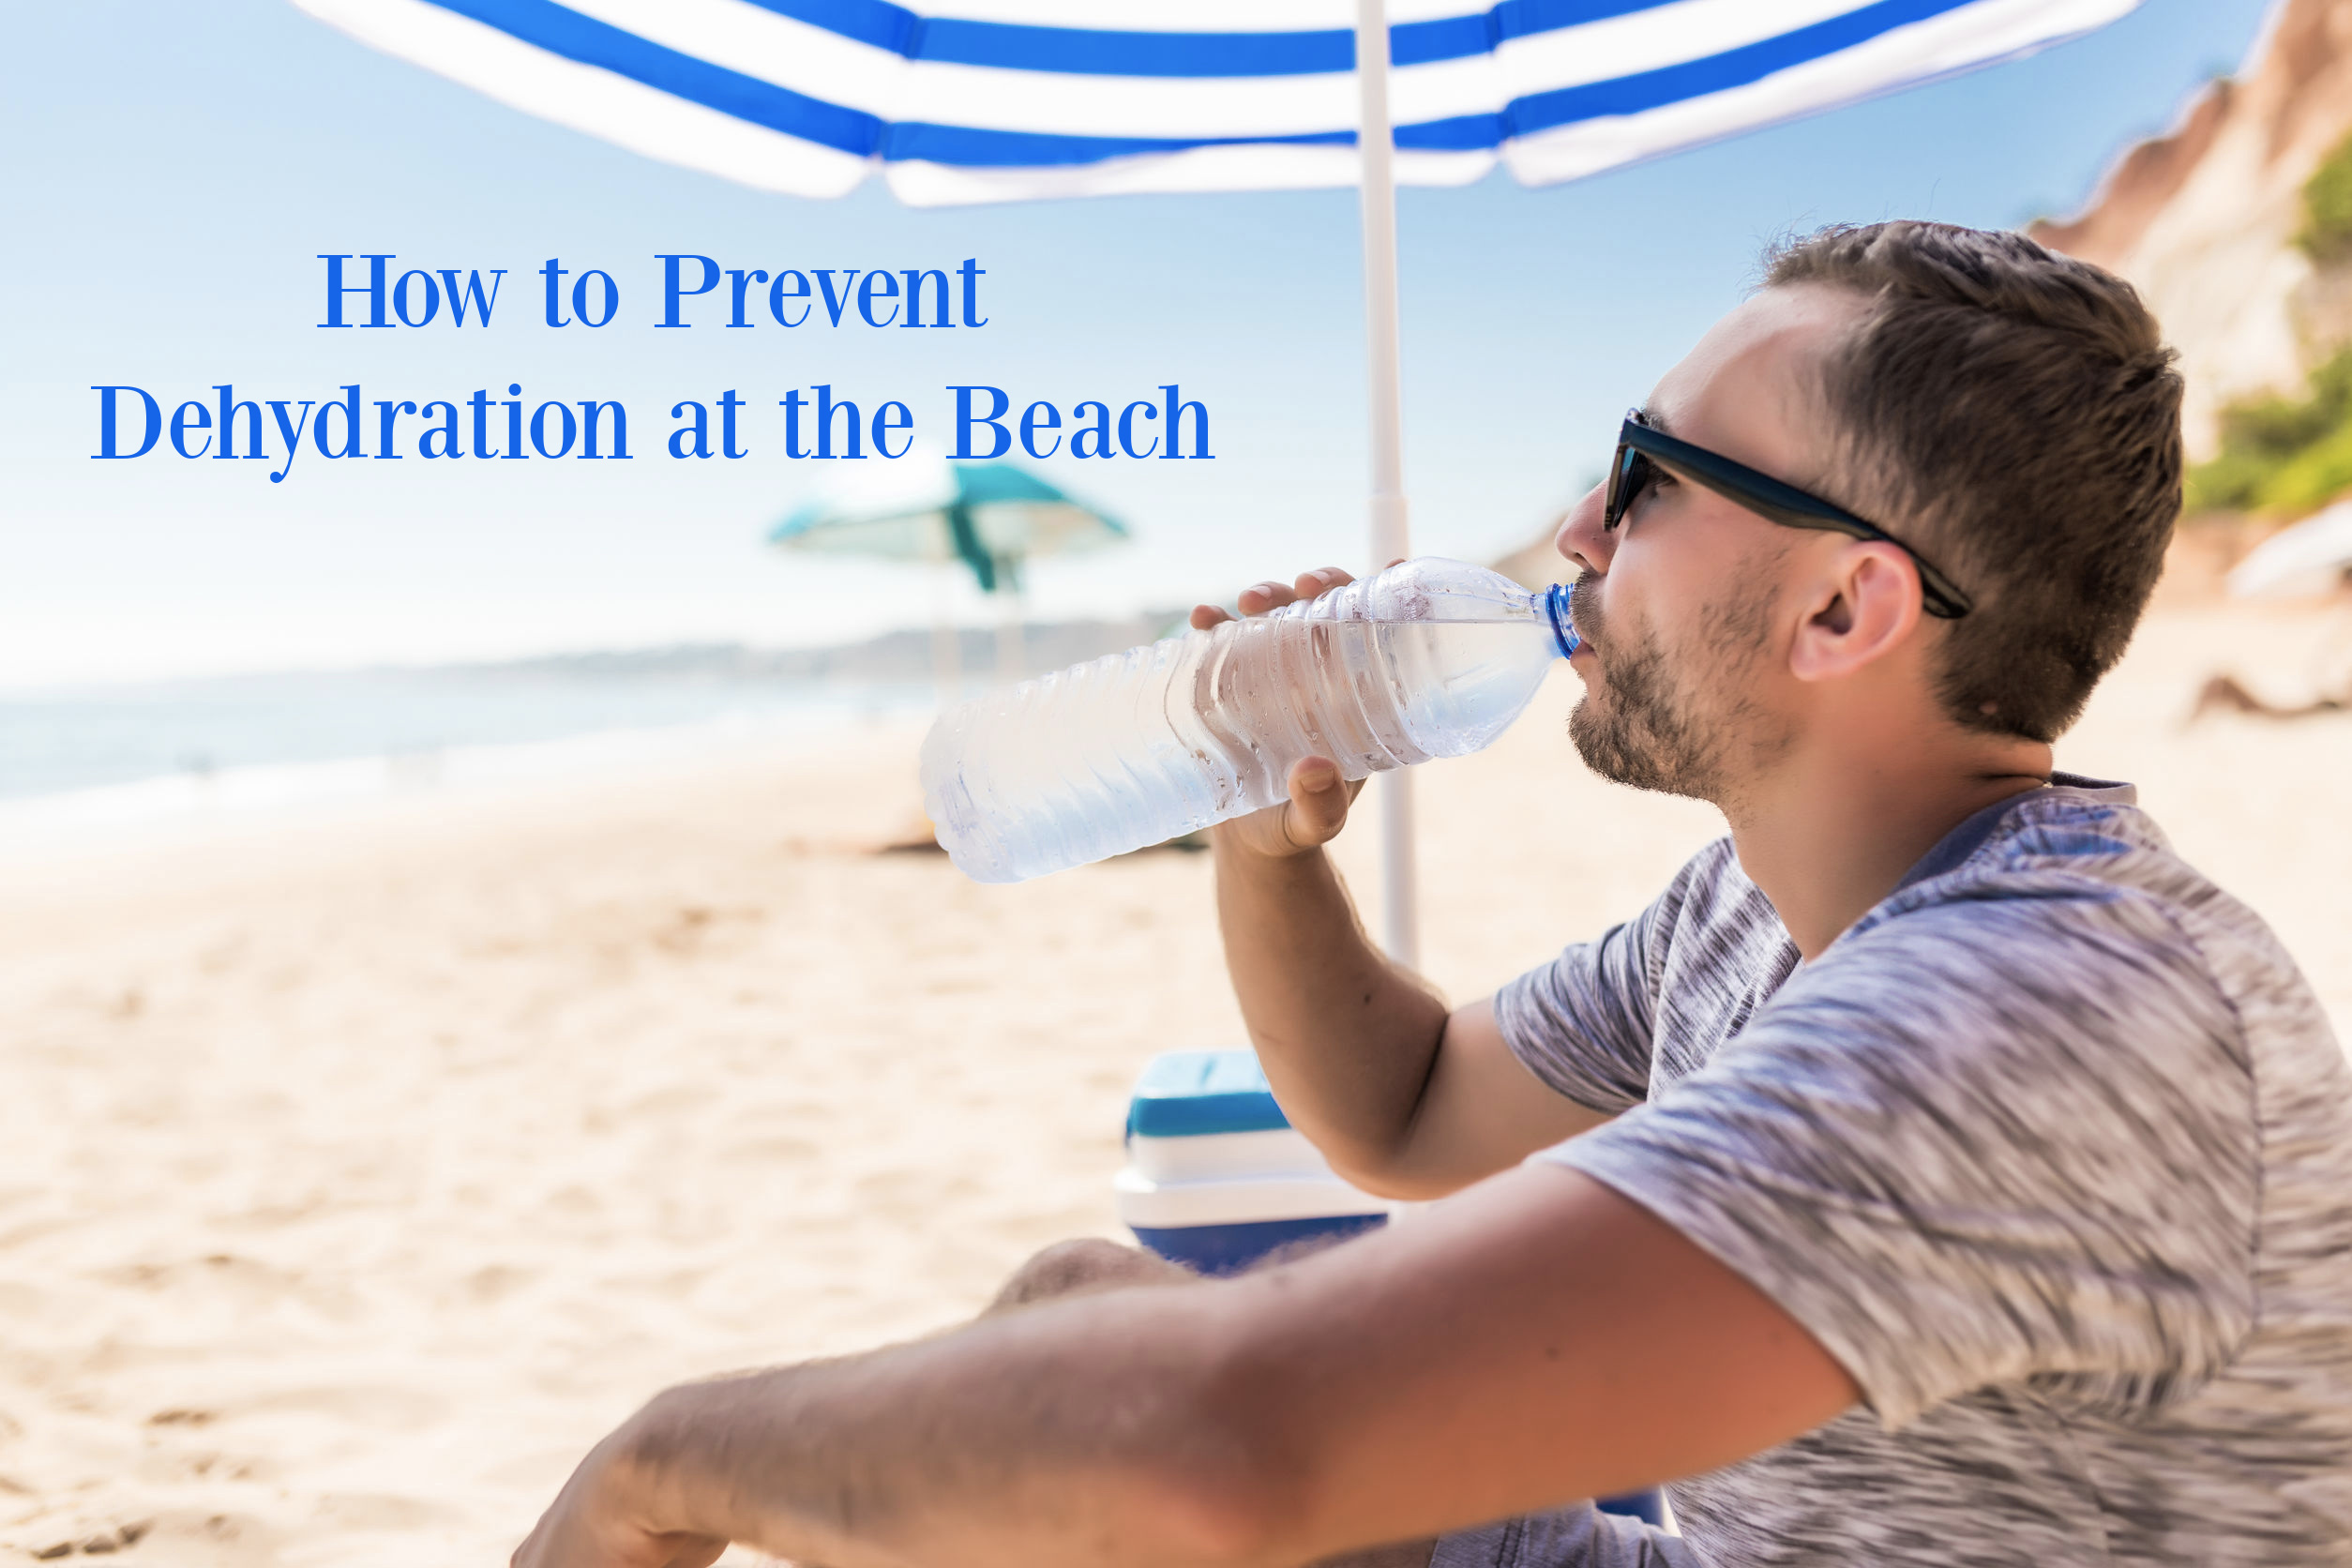 how to prevent dehydration at the beach